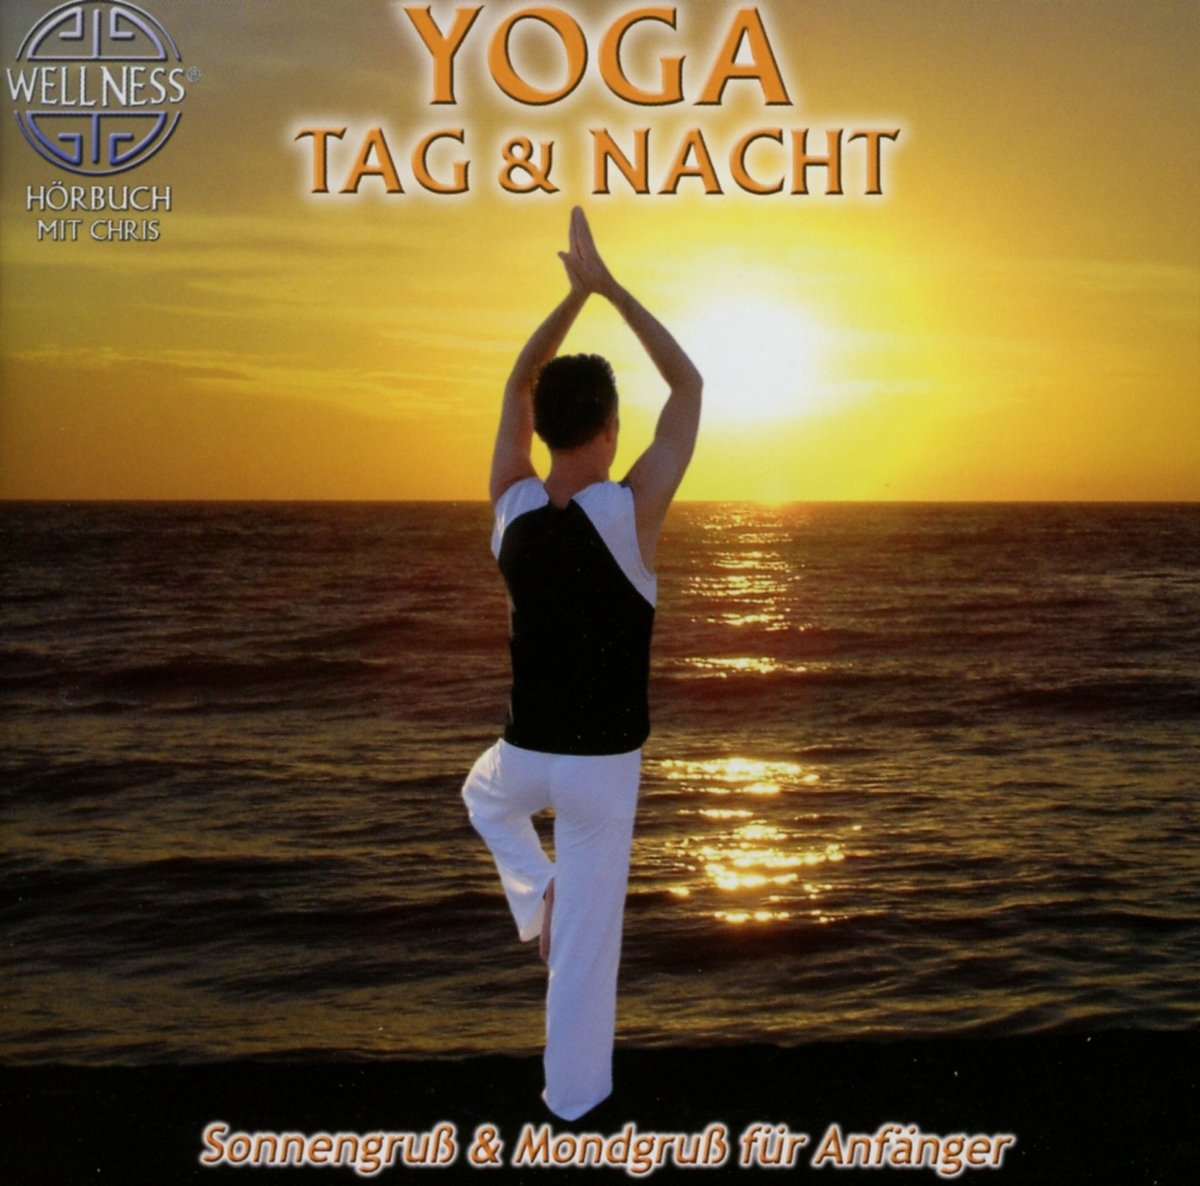 Chris Chris. Yoga Tag & Nacht (2 CD) цена